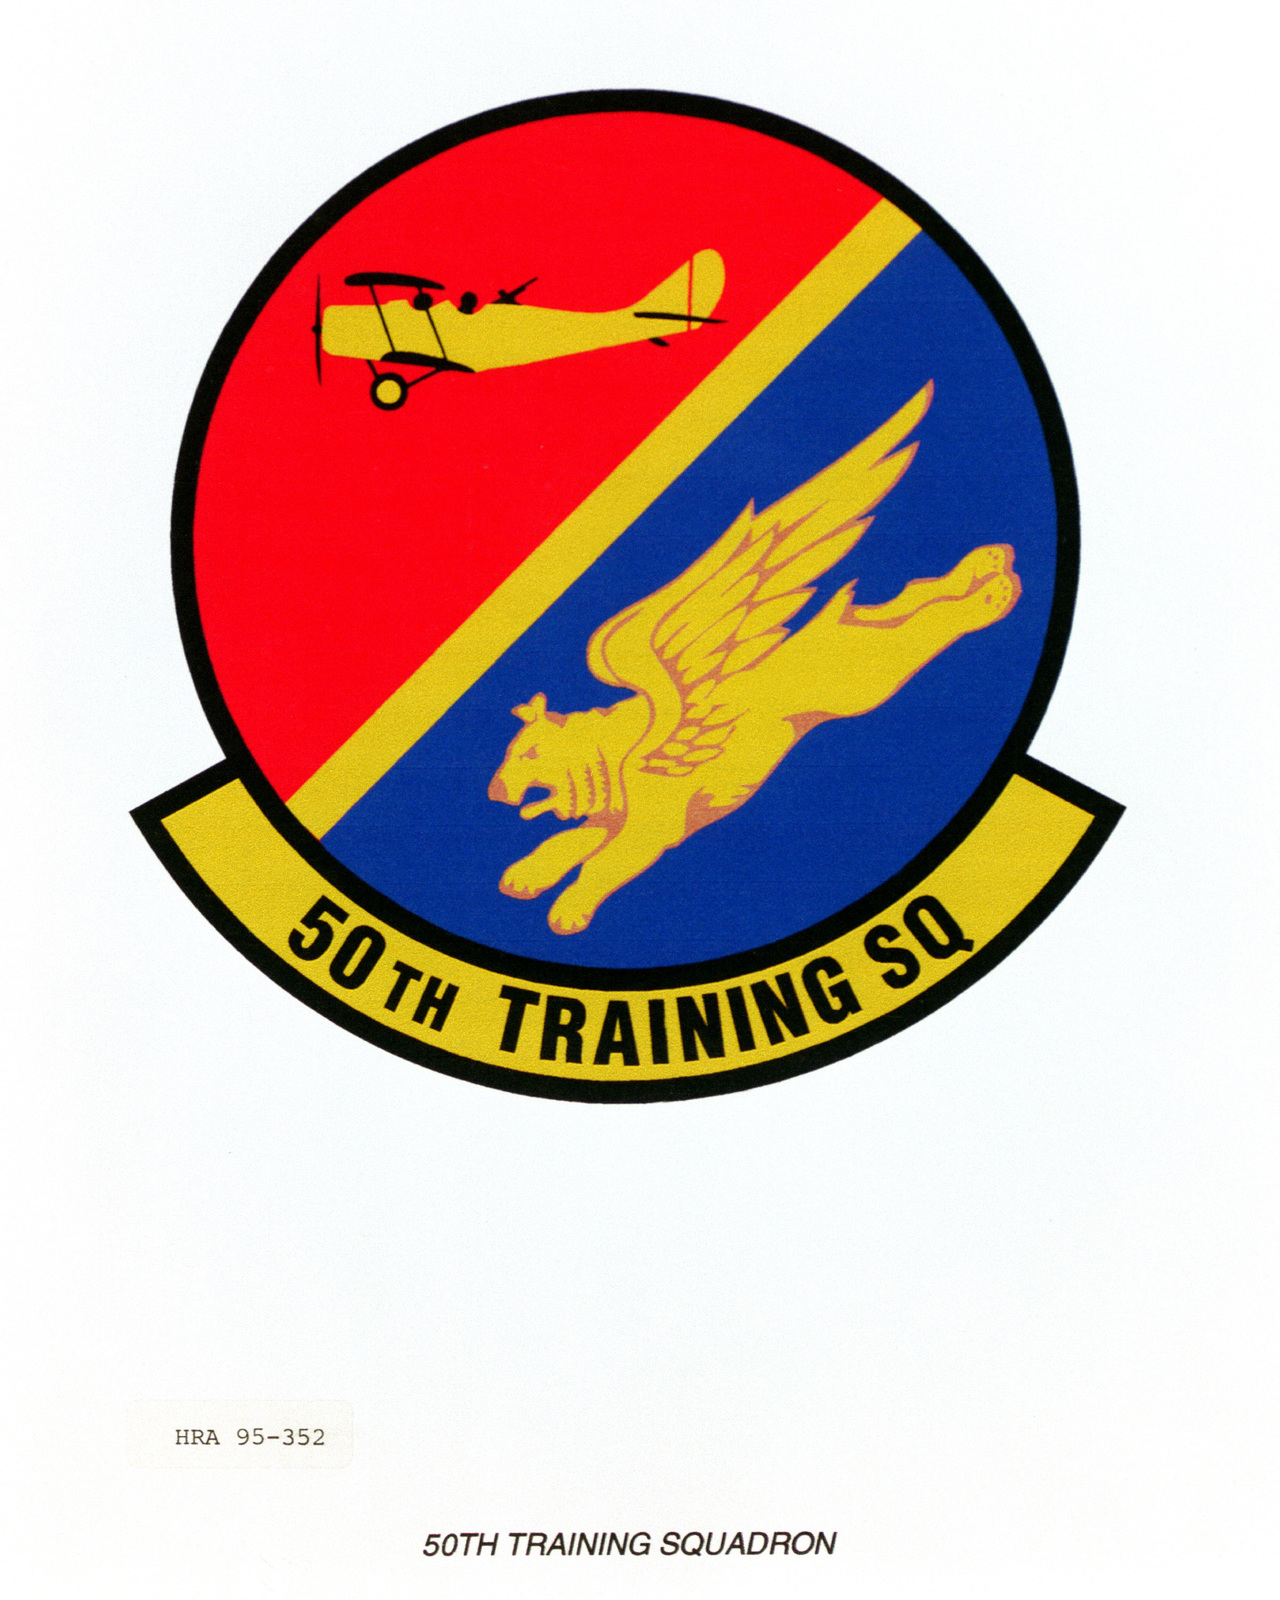 Approved Insignia for the 50th Training Squadron Exact Date Shot Unknown